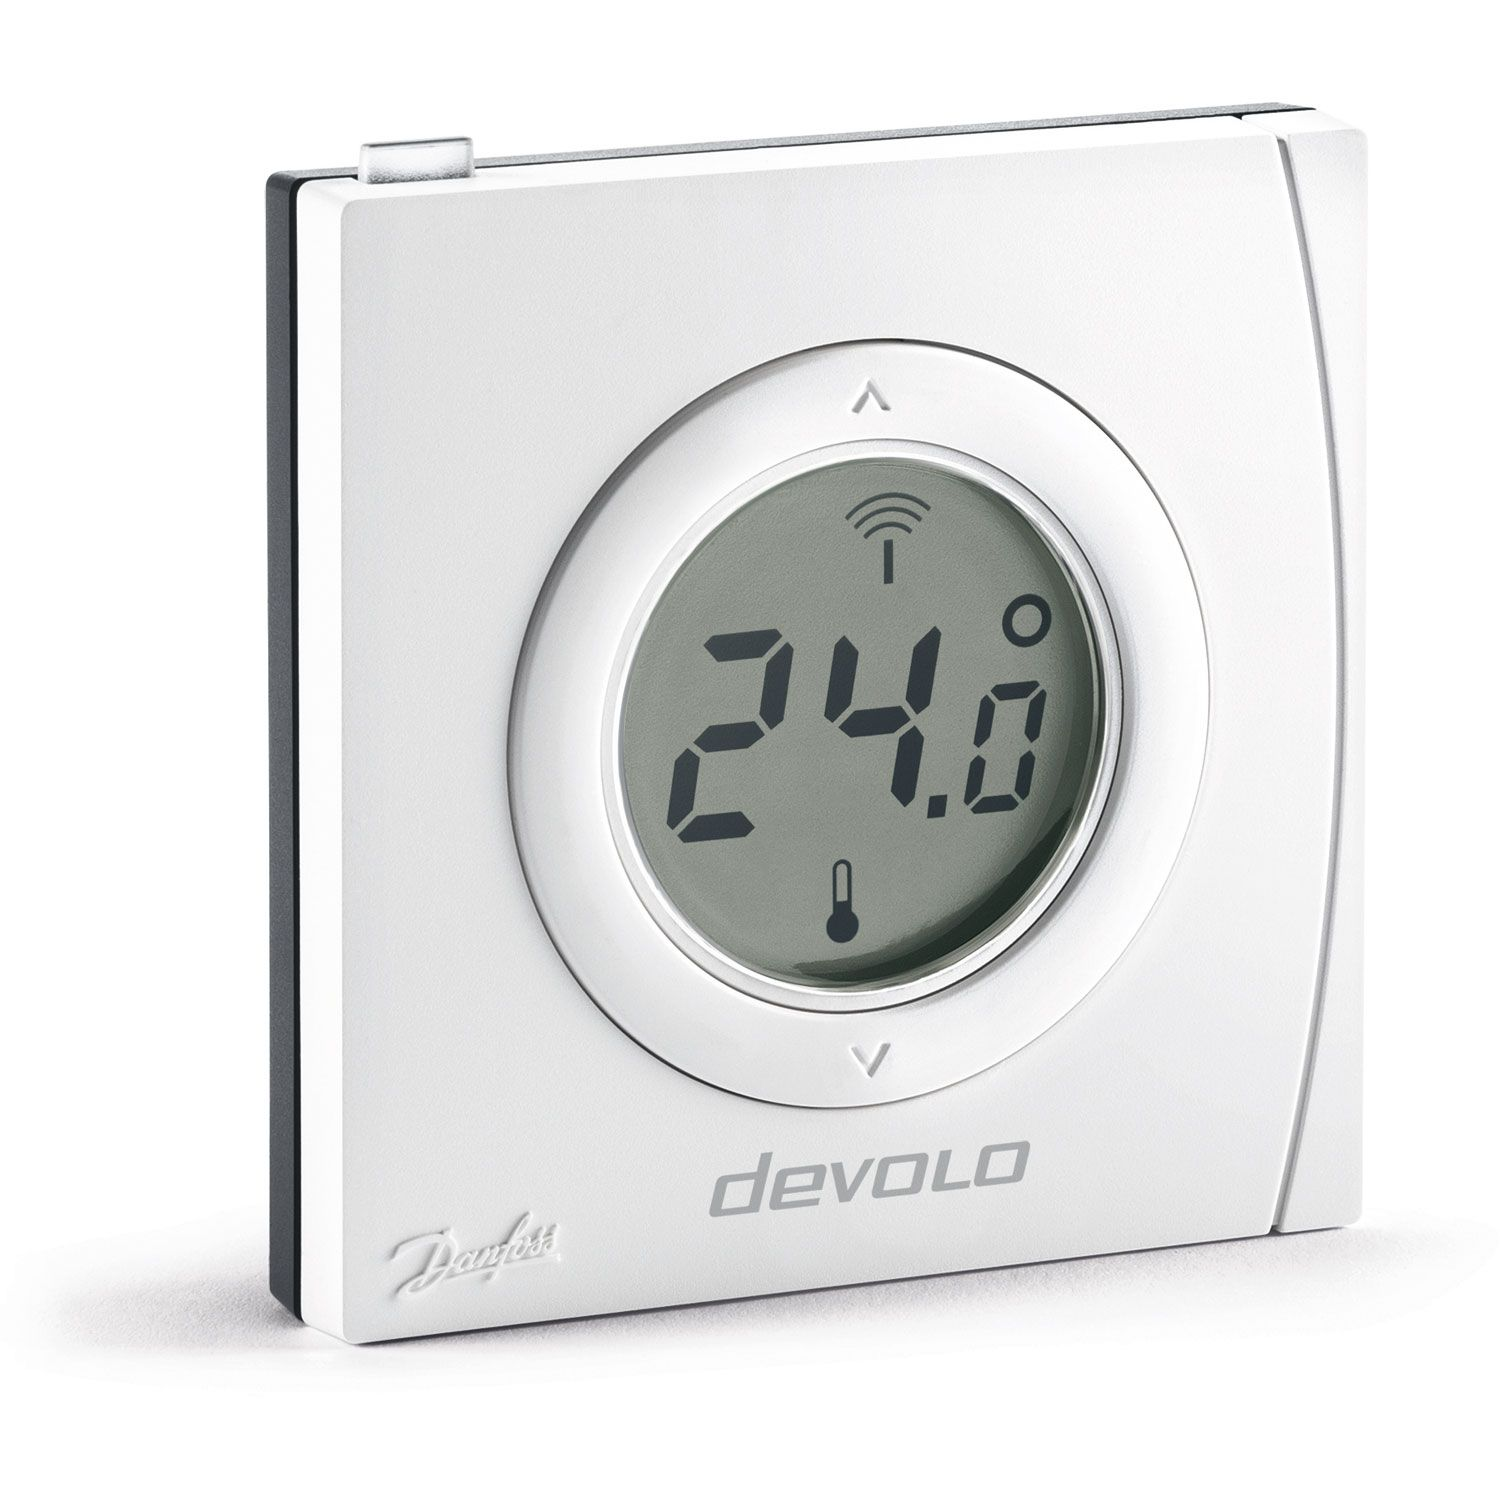 devolo home control 9517 le thermostat connect pour un meilleur confort. Black Bedroom Furniture Sets. Home Design Ideas